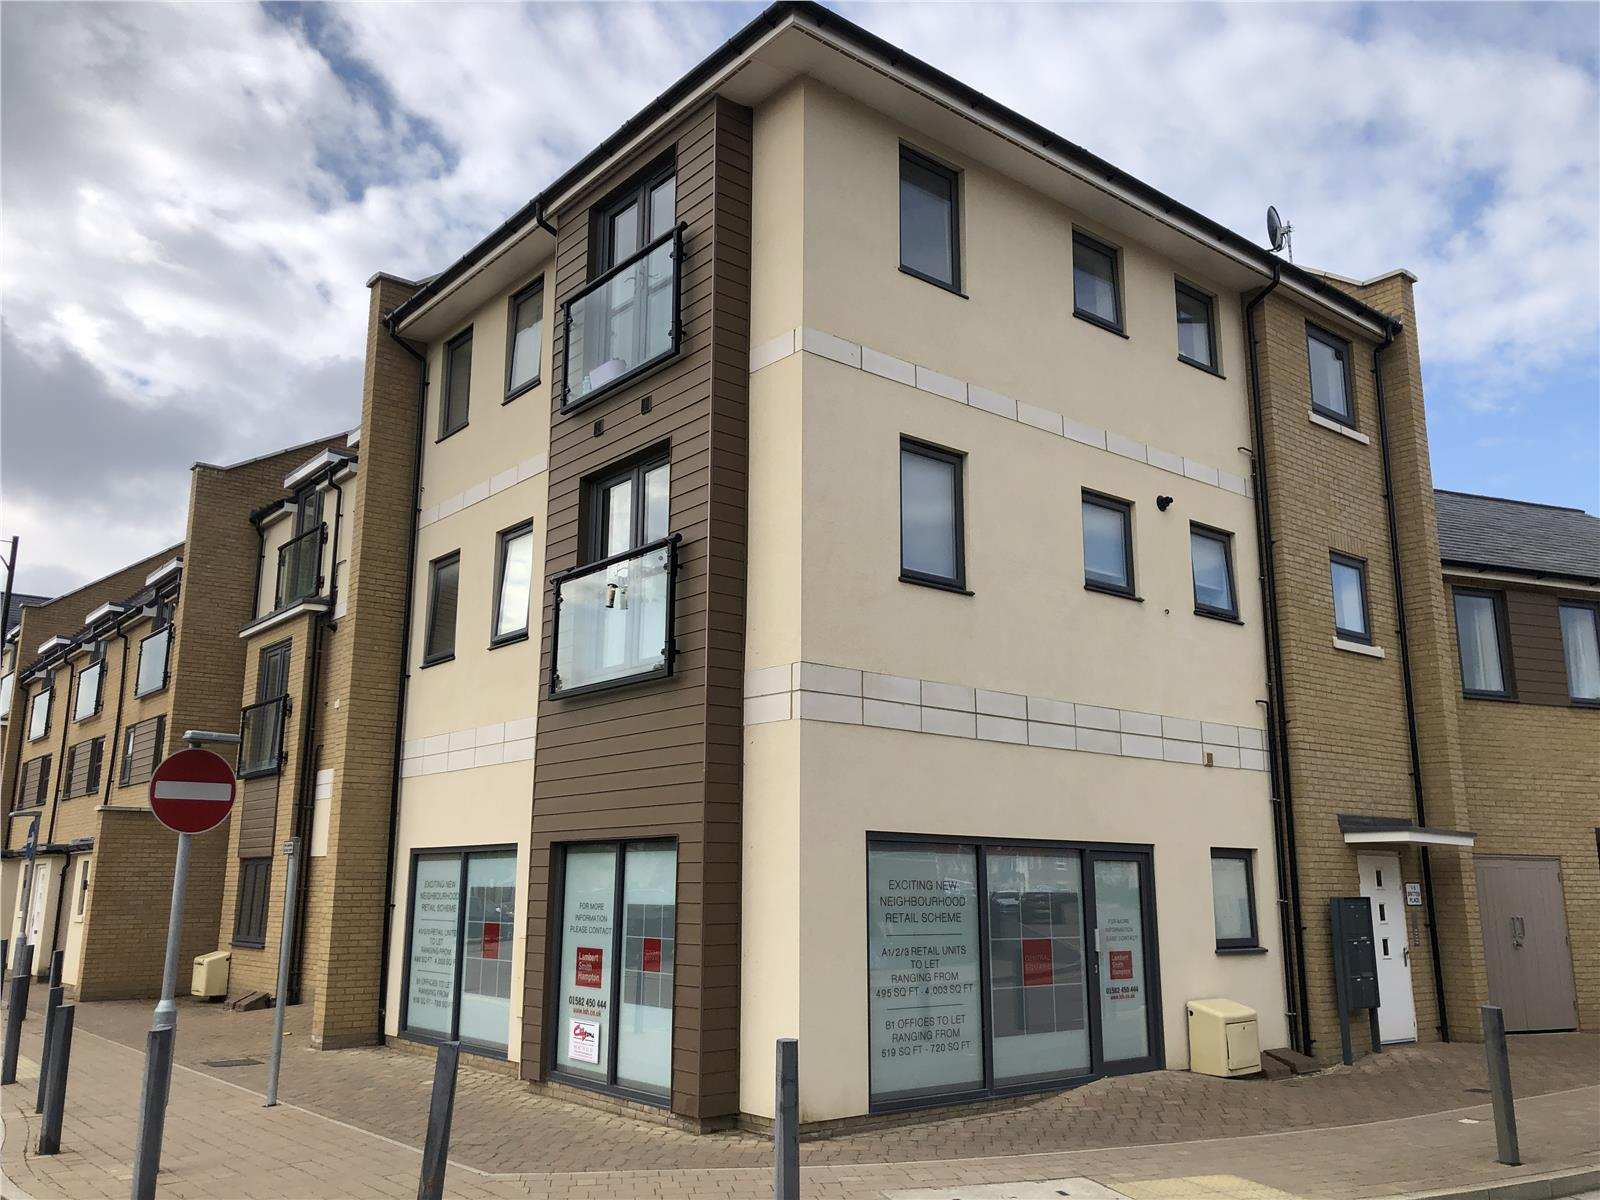 376 Central Square (offices), Kings Reach, Biggleswade, Bedfordshire, SG18